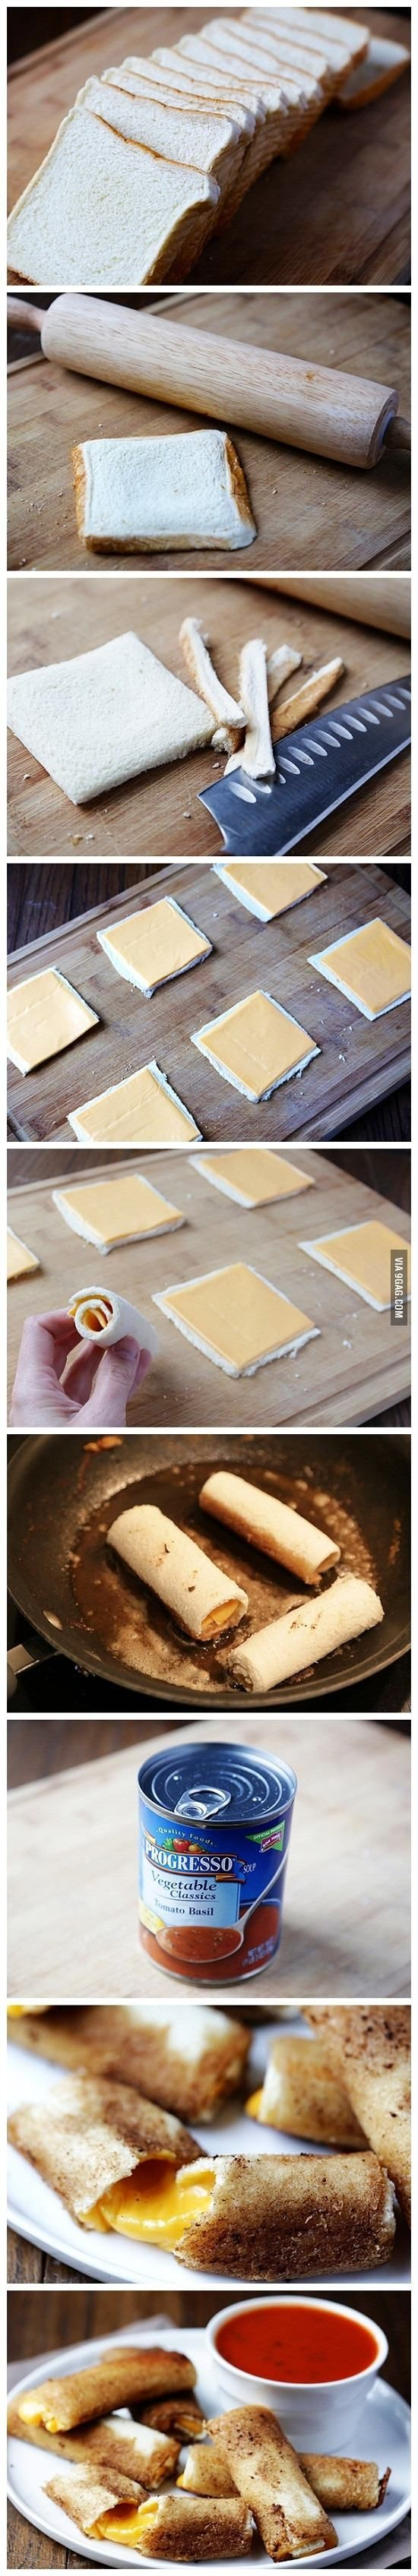 Grilled cheese sticks!!